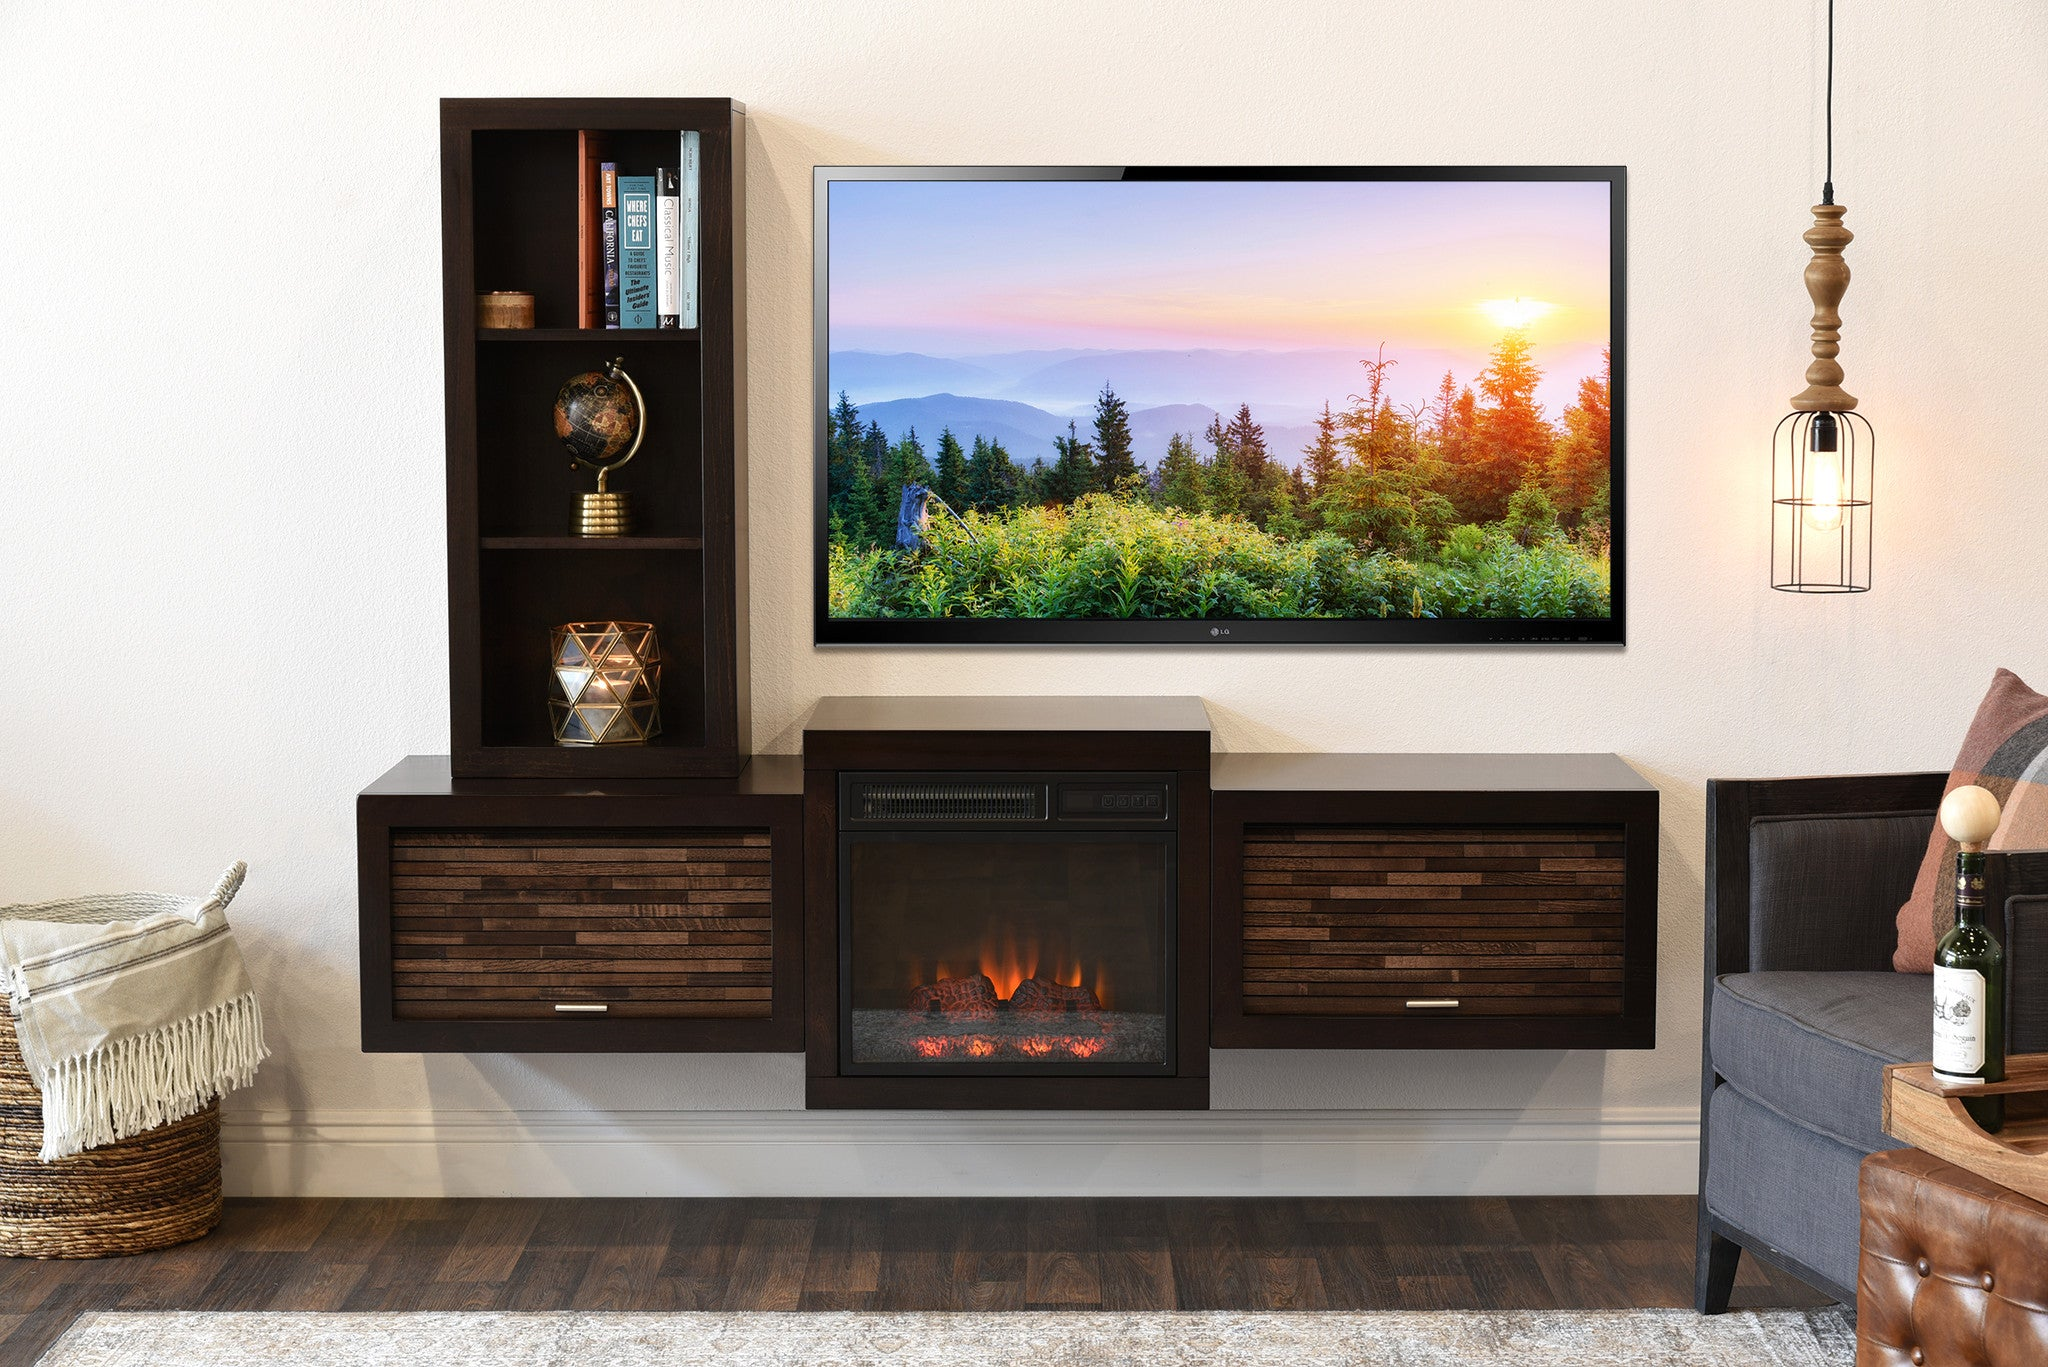 Tv Stand Designs On Wall : Floating wall mount tv stand with fireplace and bookcase